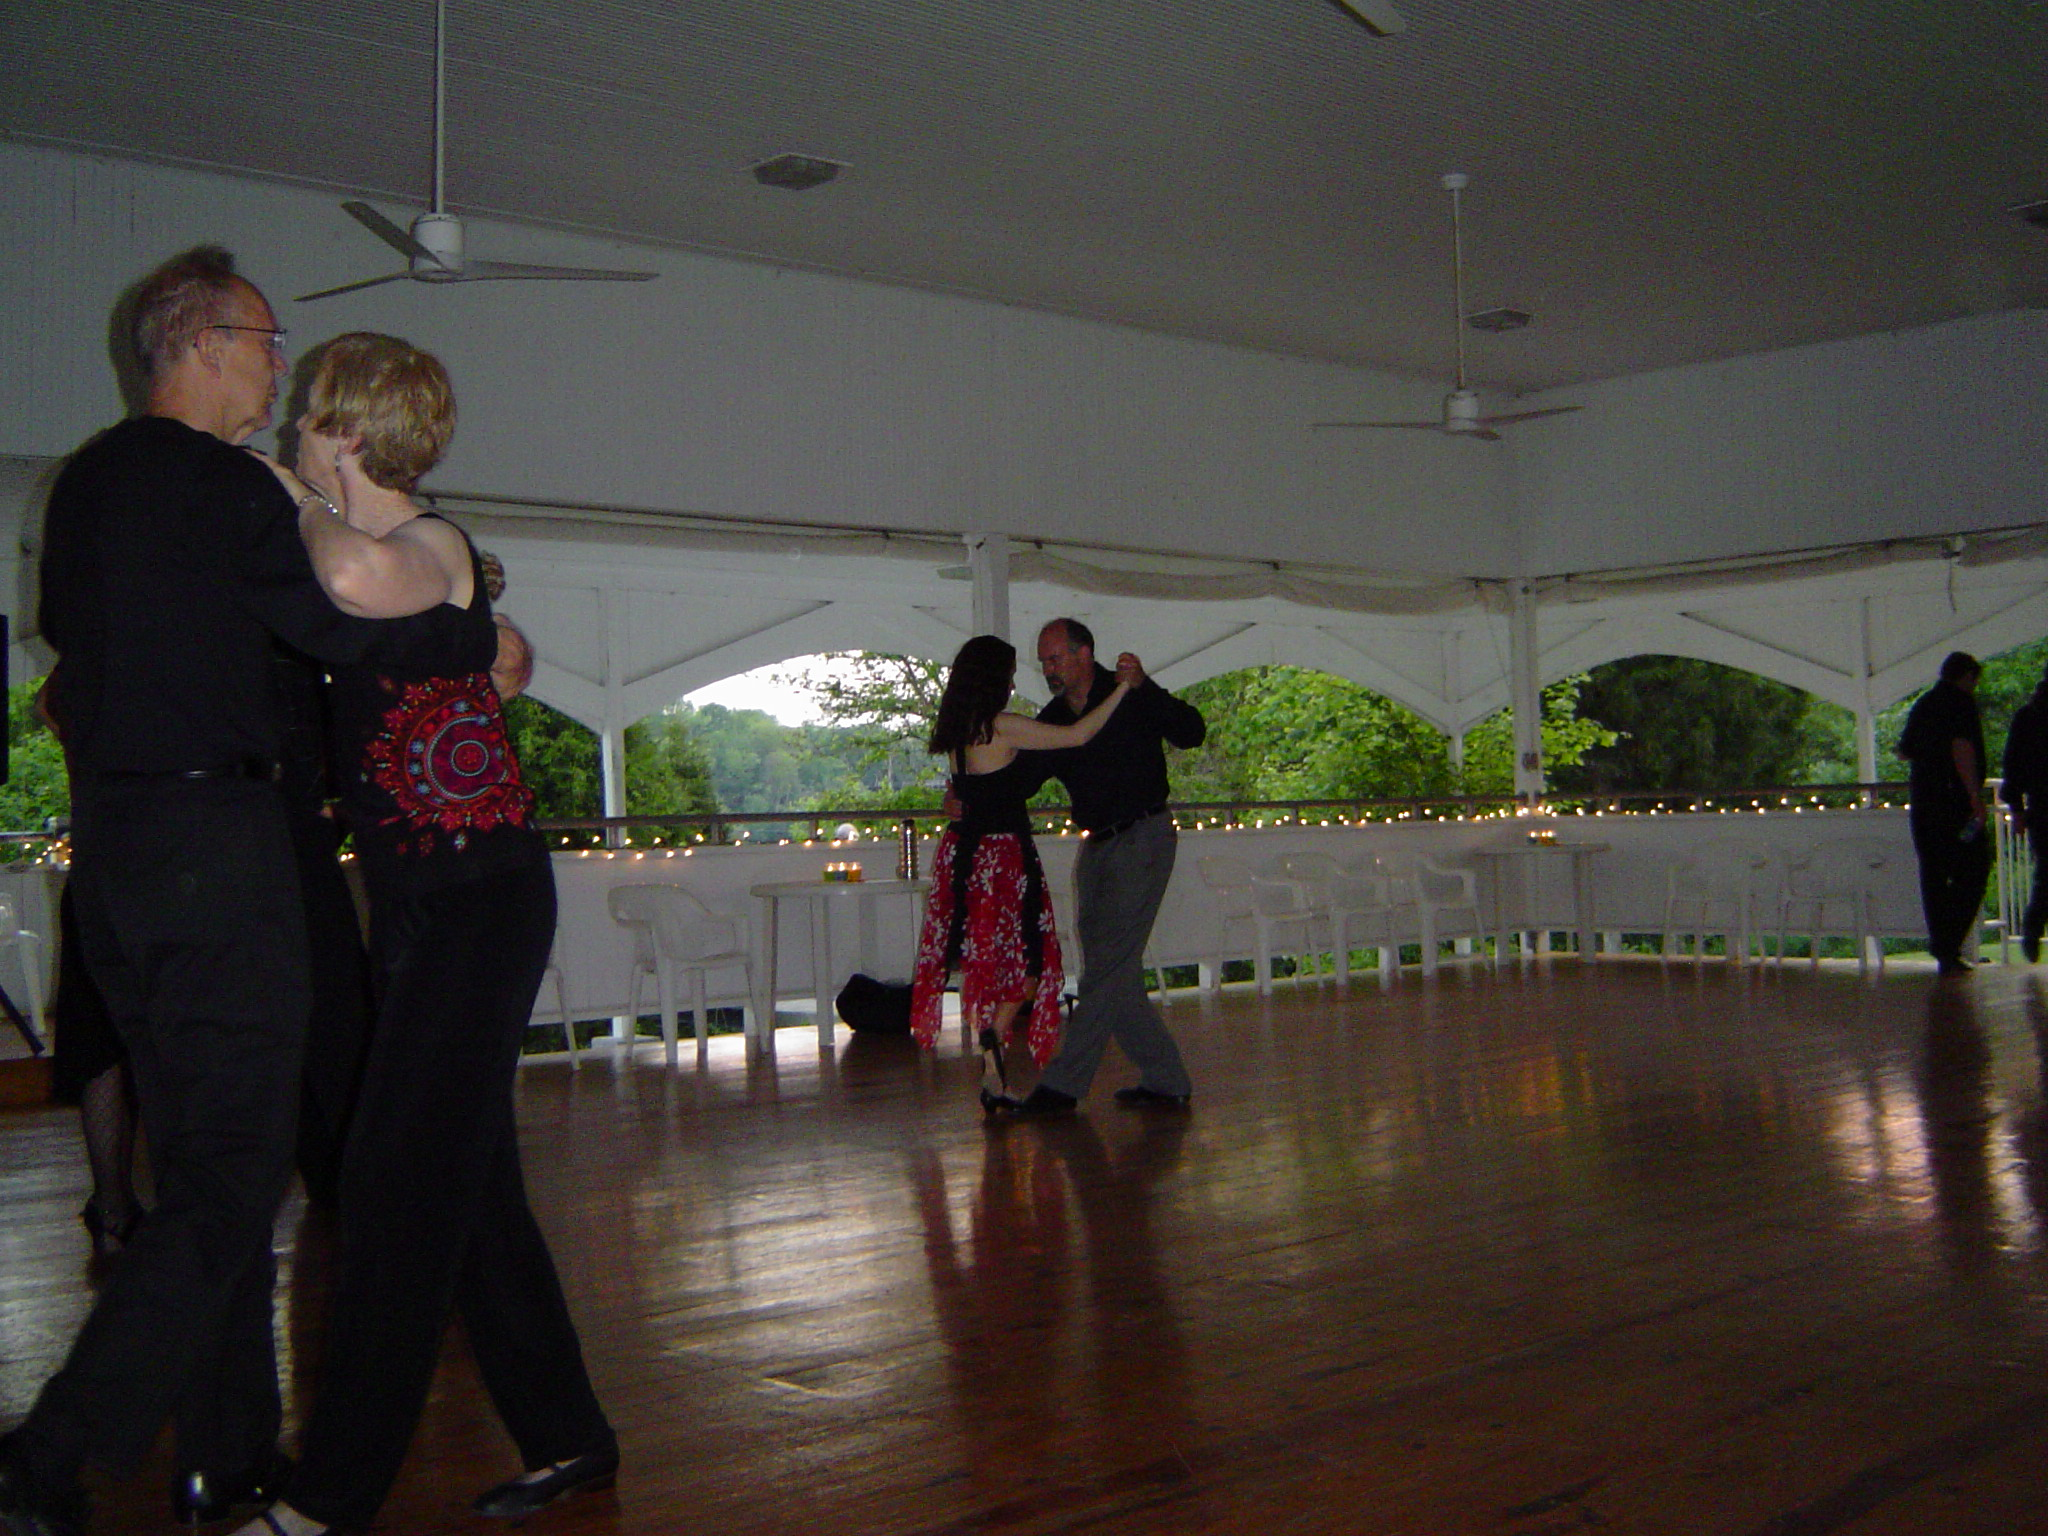 Ha! Kelly and Lu Ann dancing open!